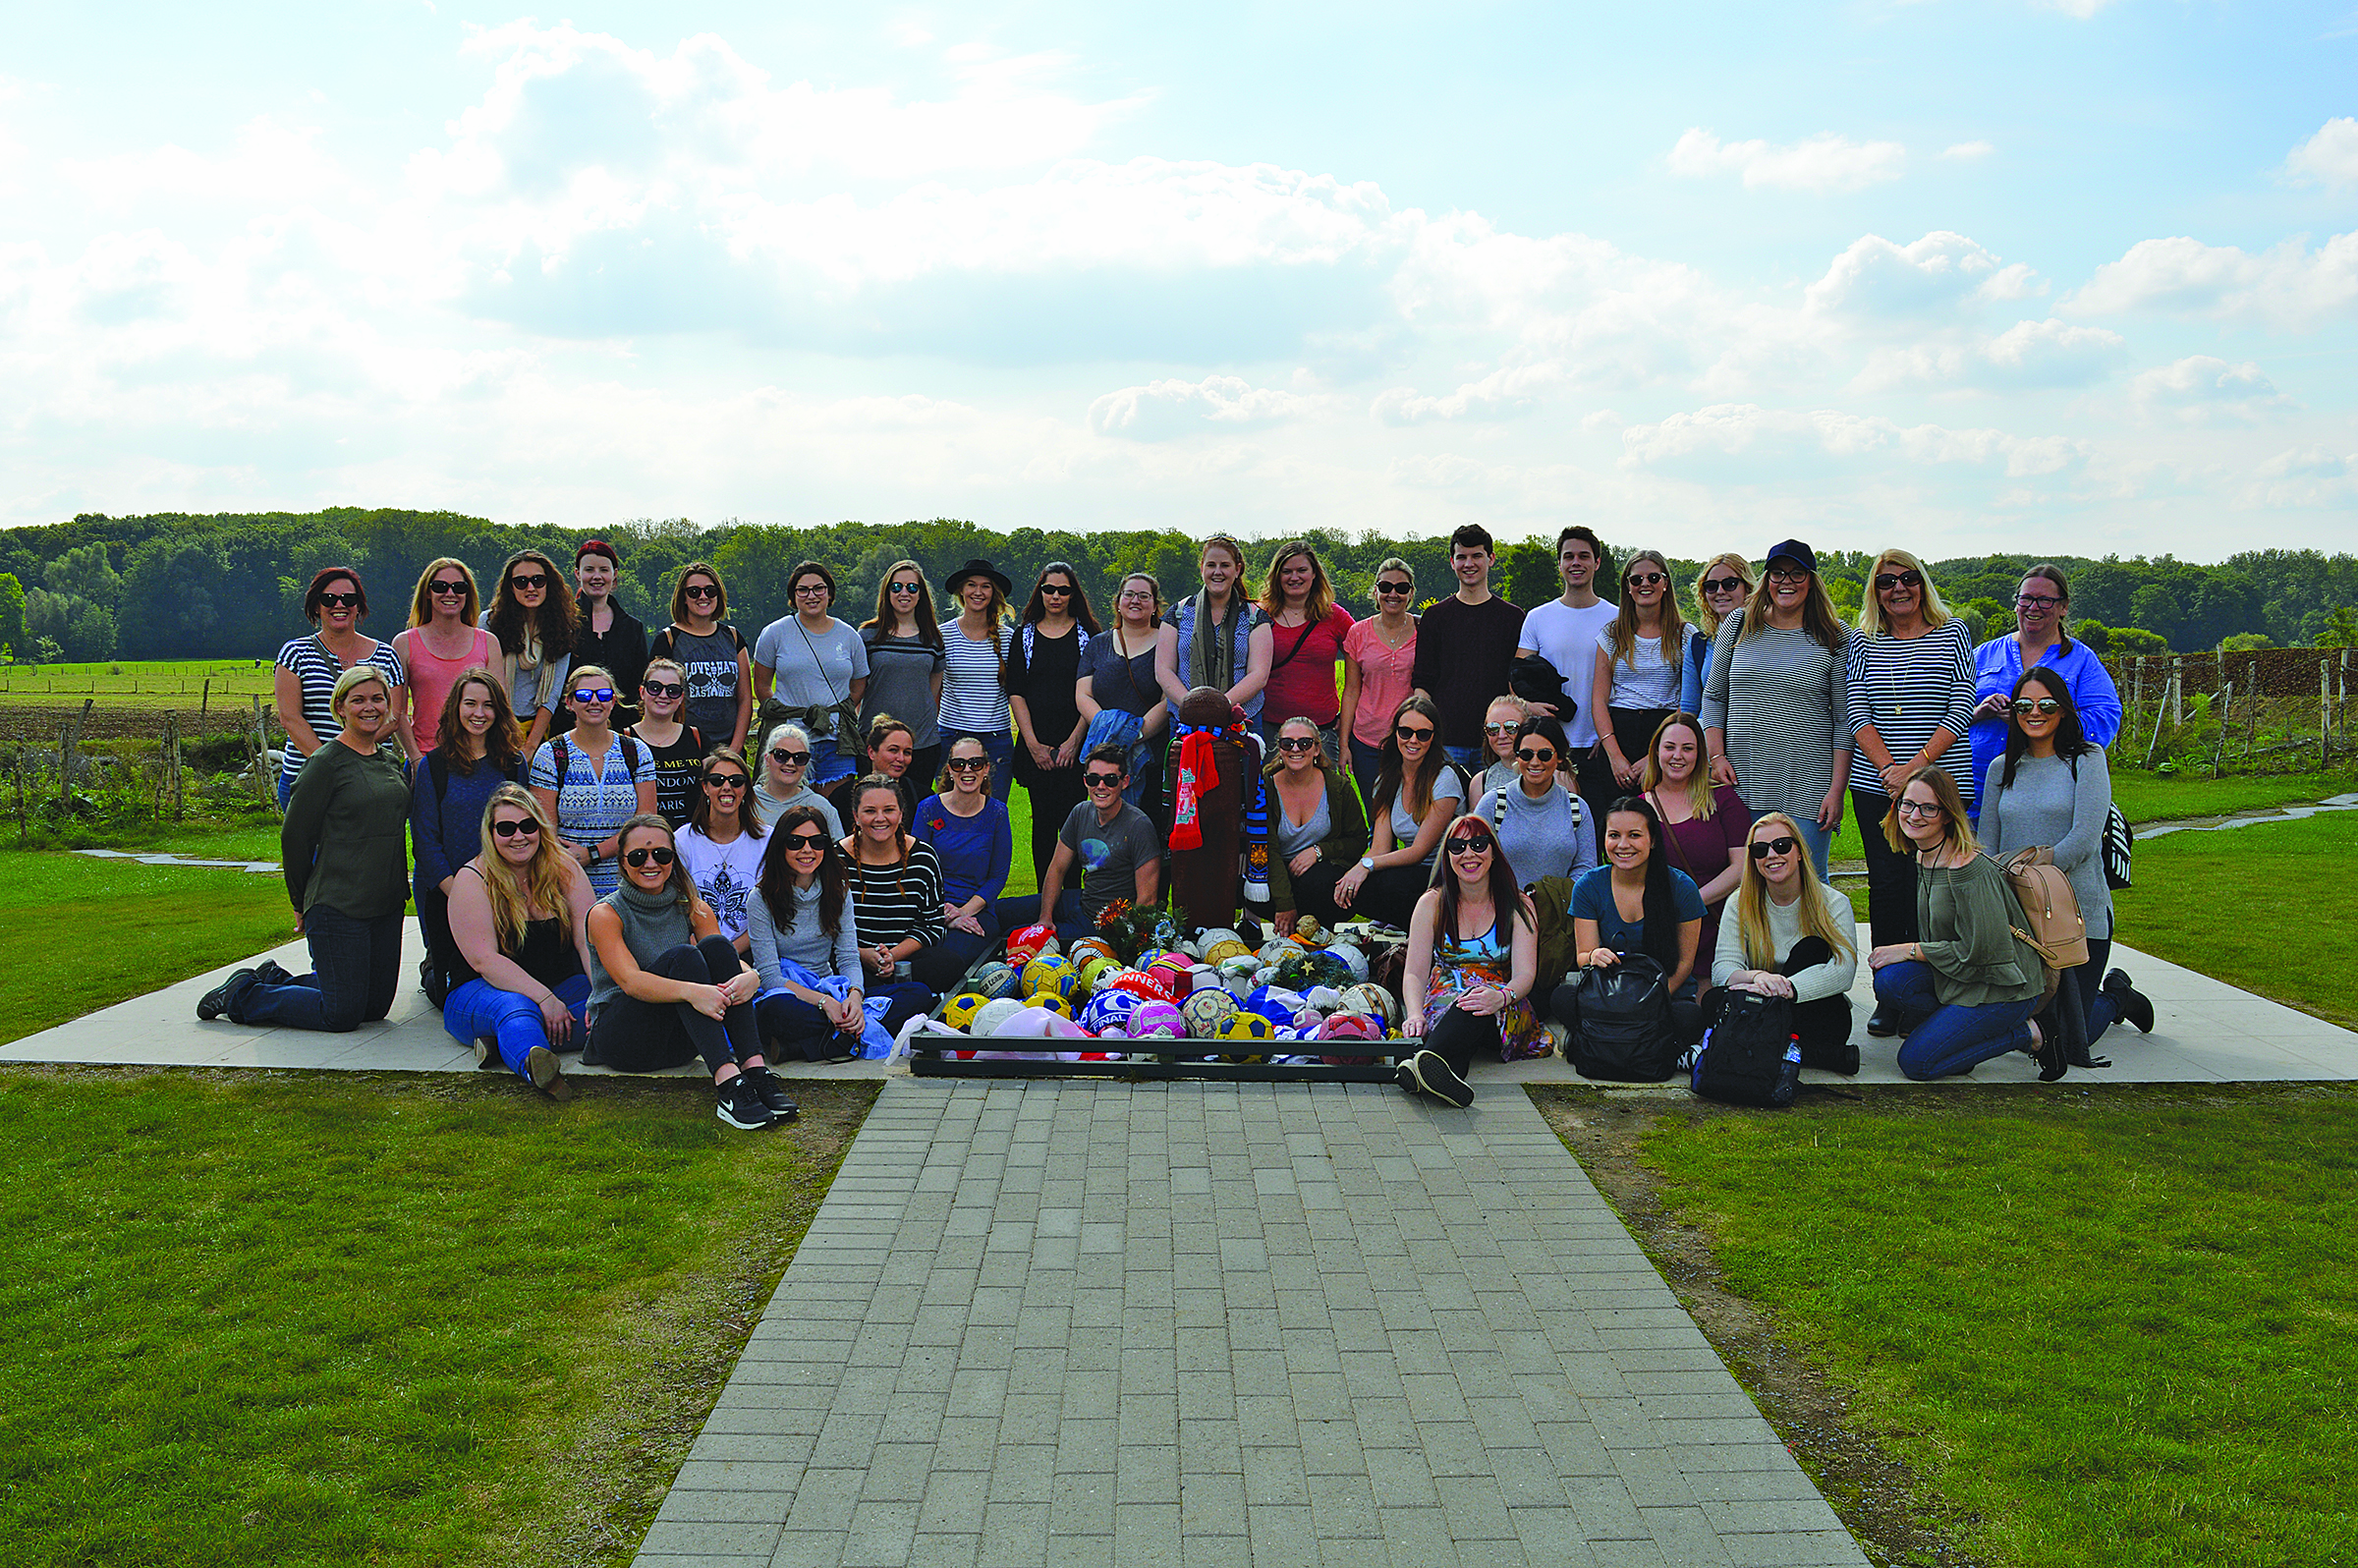 University of Newcastle Study Tour at the site of the 1914 Christmas Truce